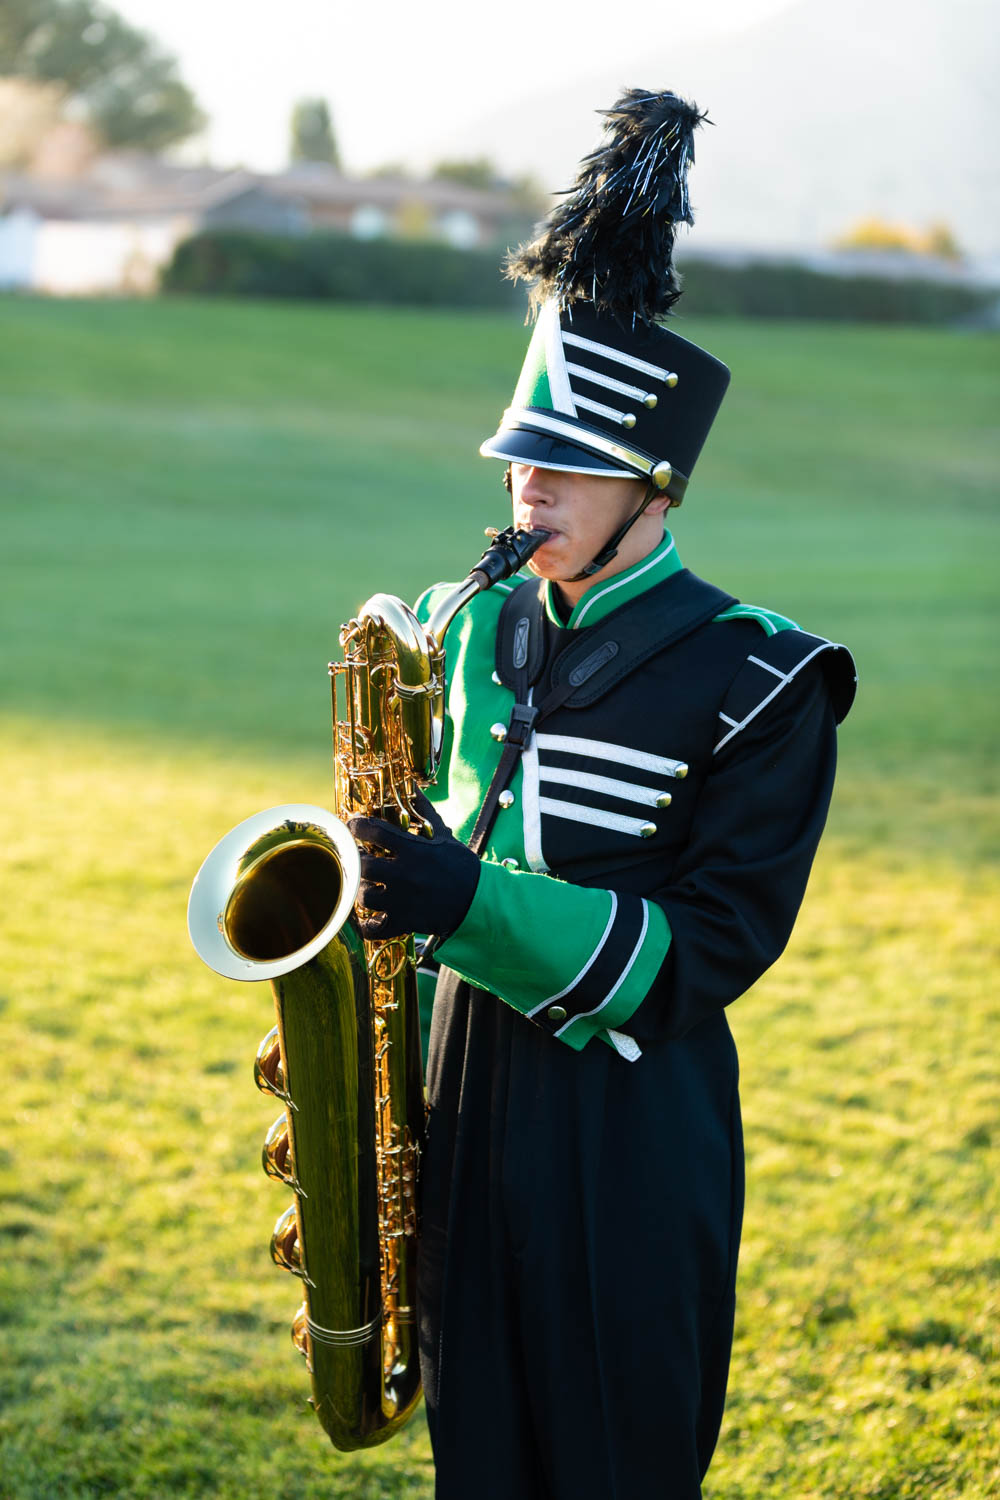 Playing the bass saxophone